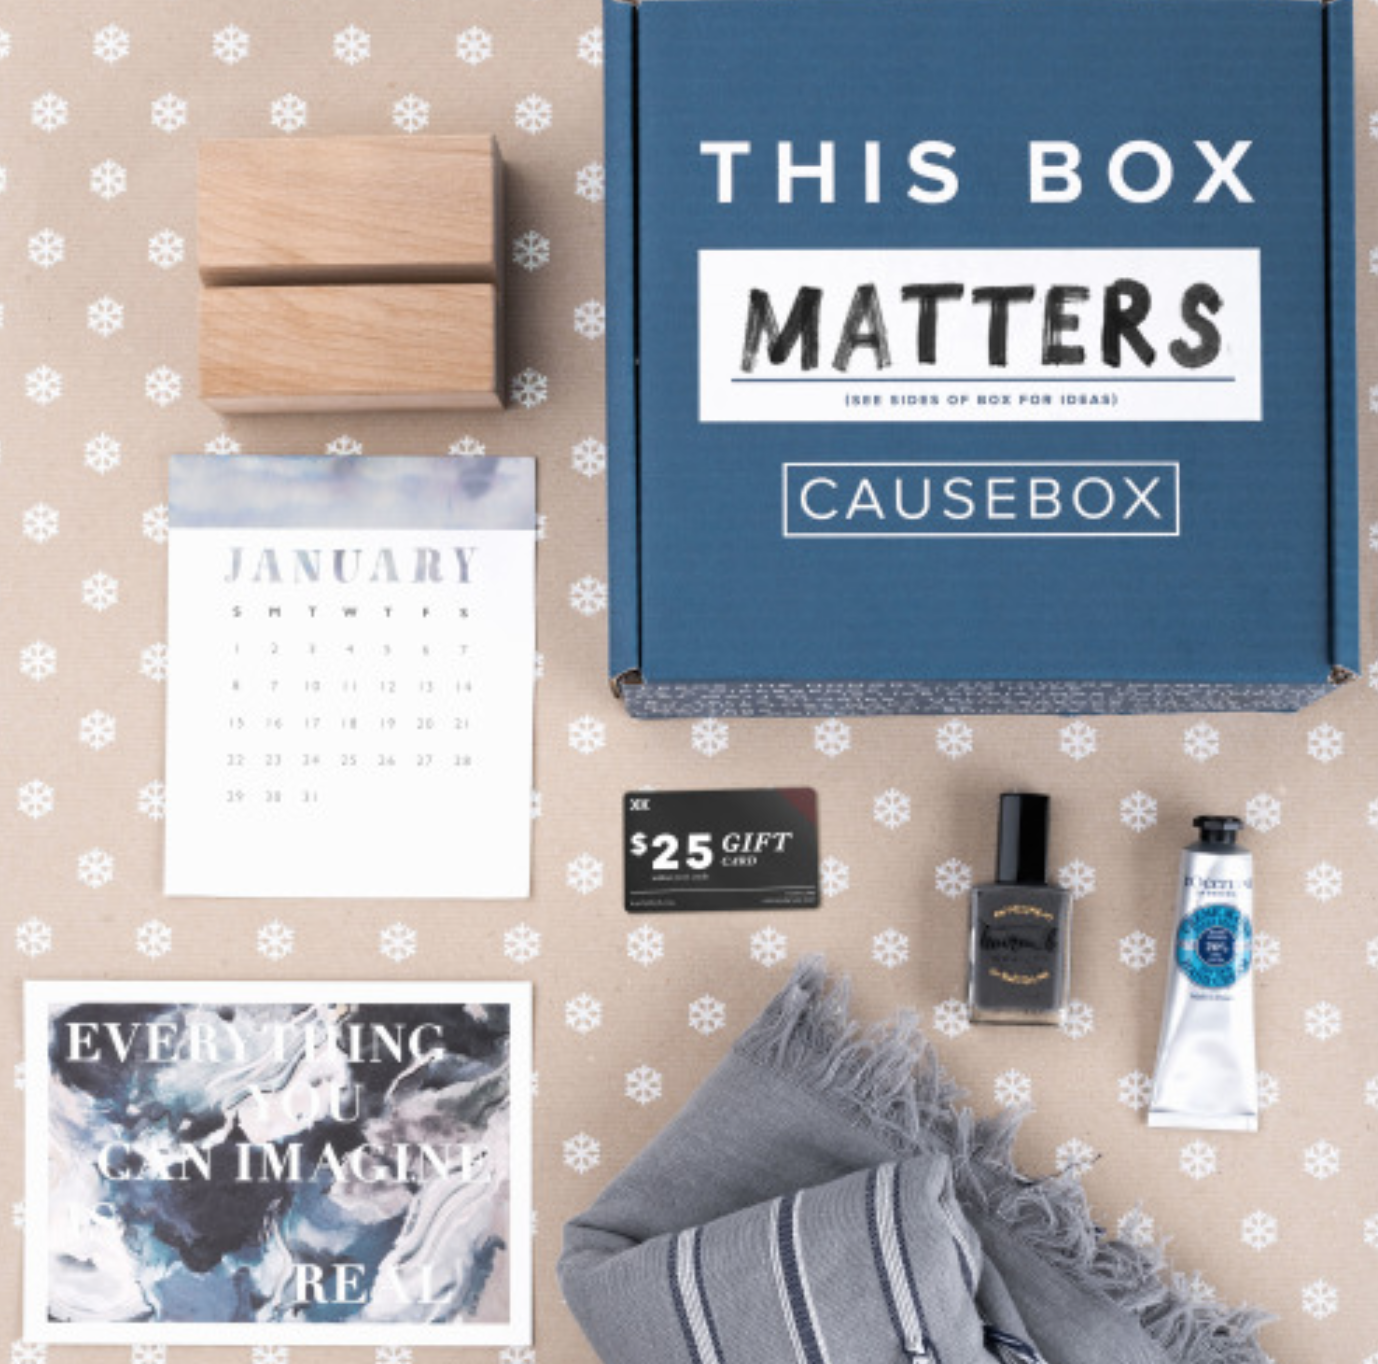 CAUSEBOX is a seasonal subscription box of socially conscious goods.